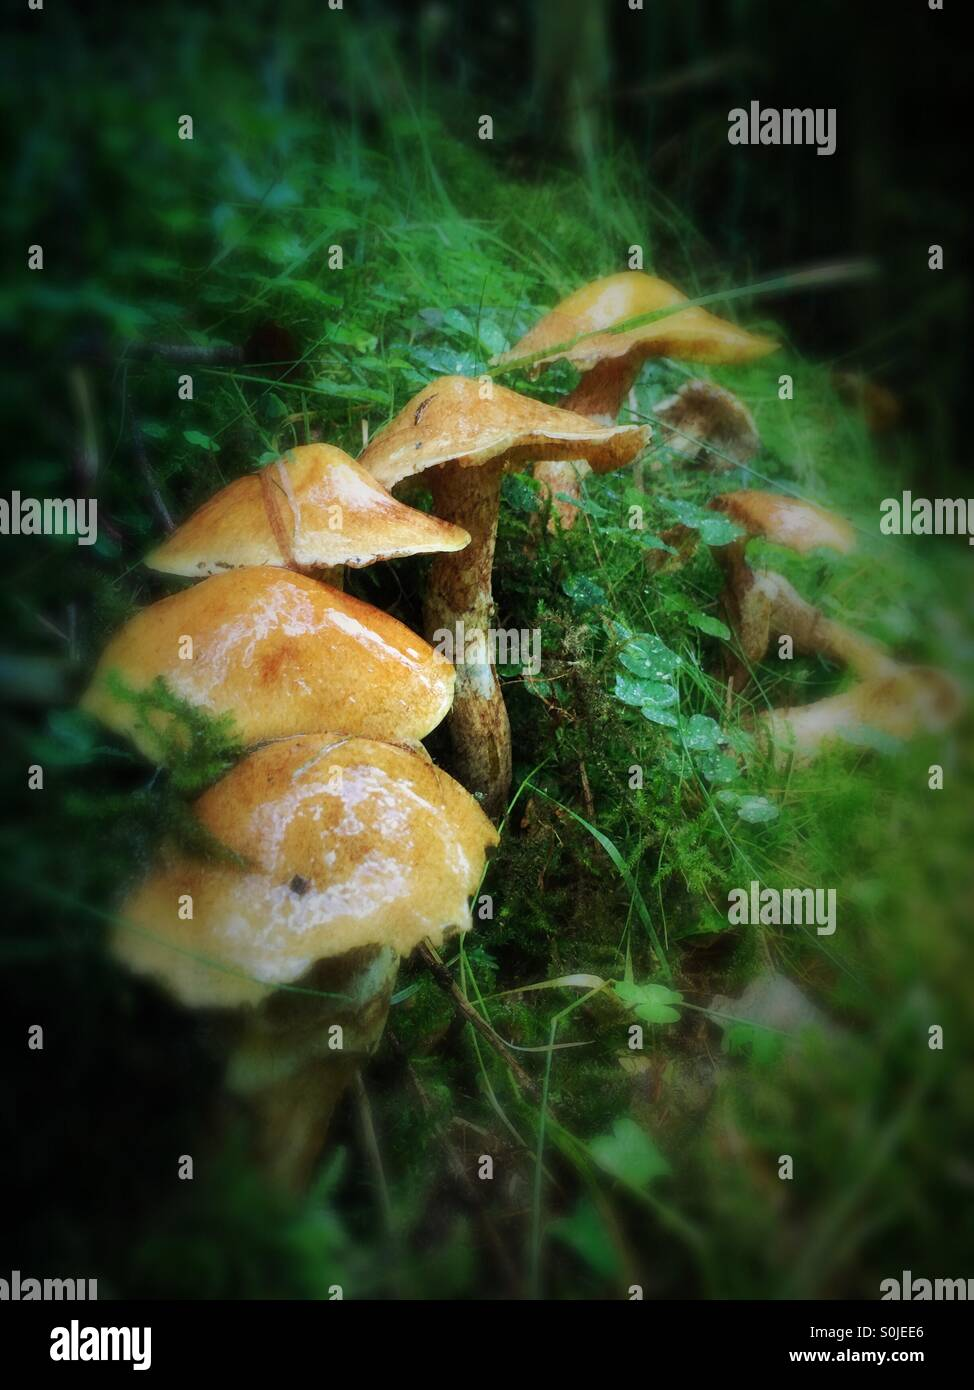 Toadstools (Fungi) growing in the damp long grass - Stock Image